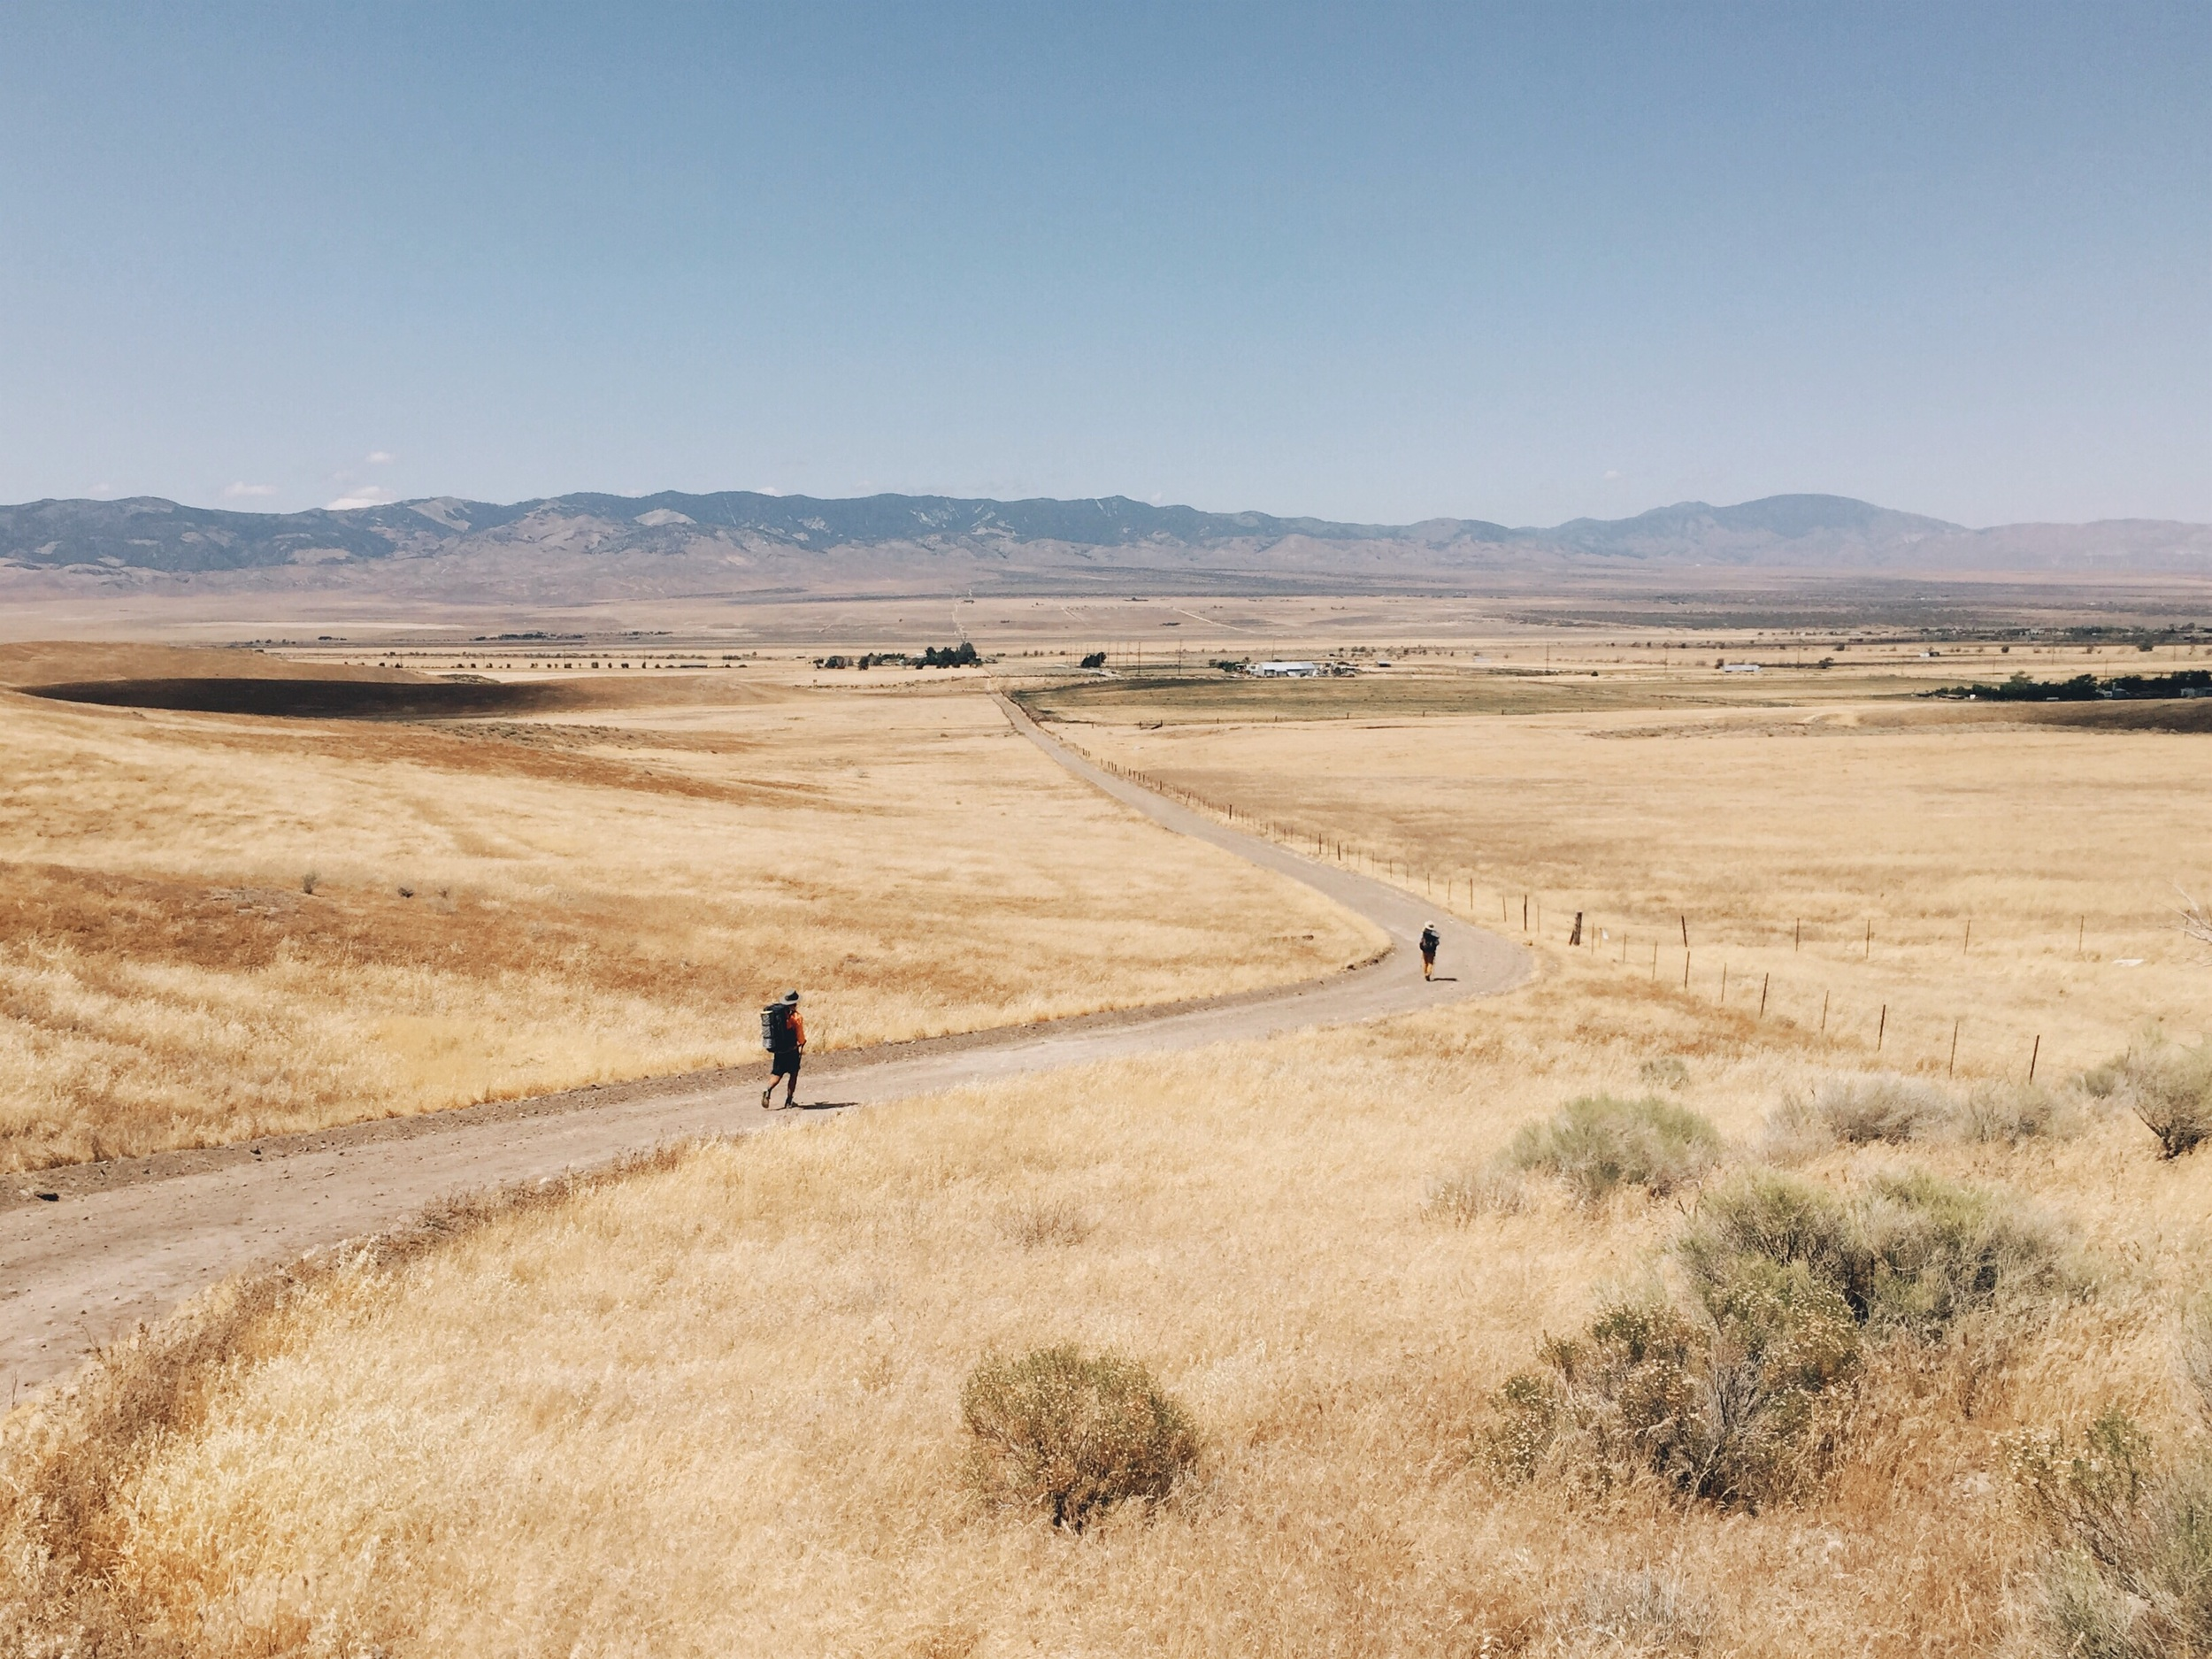 The long walk into Hikertown.